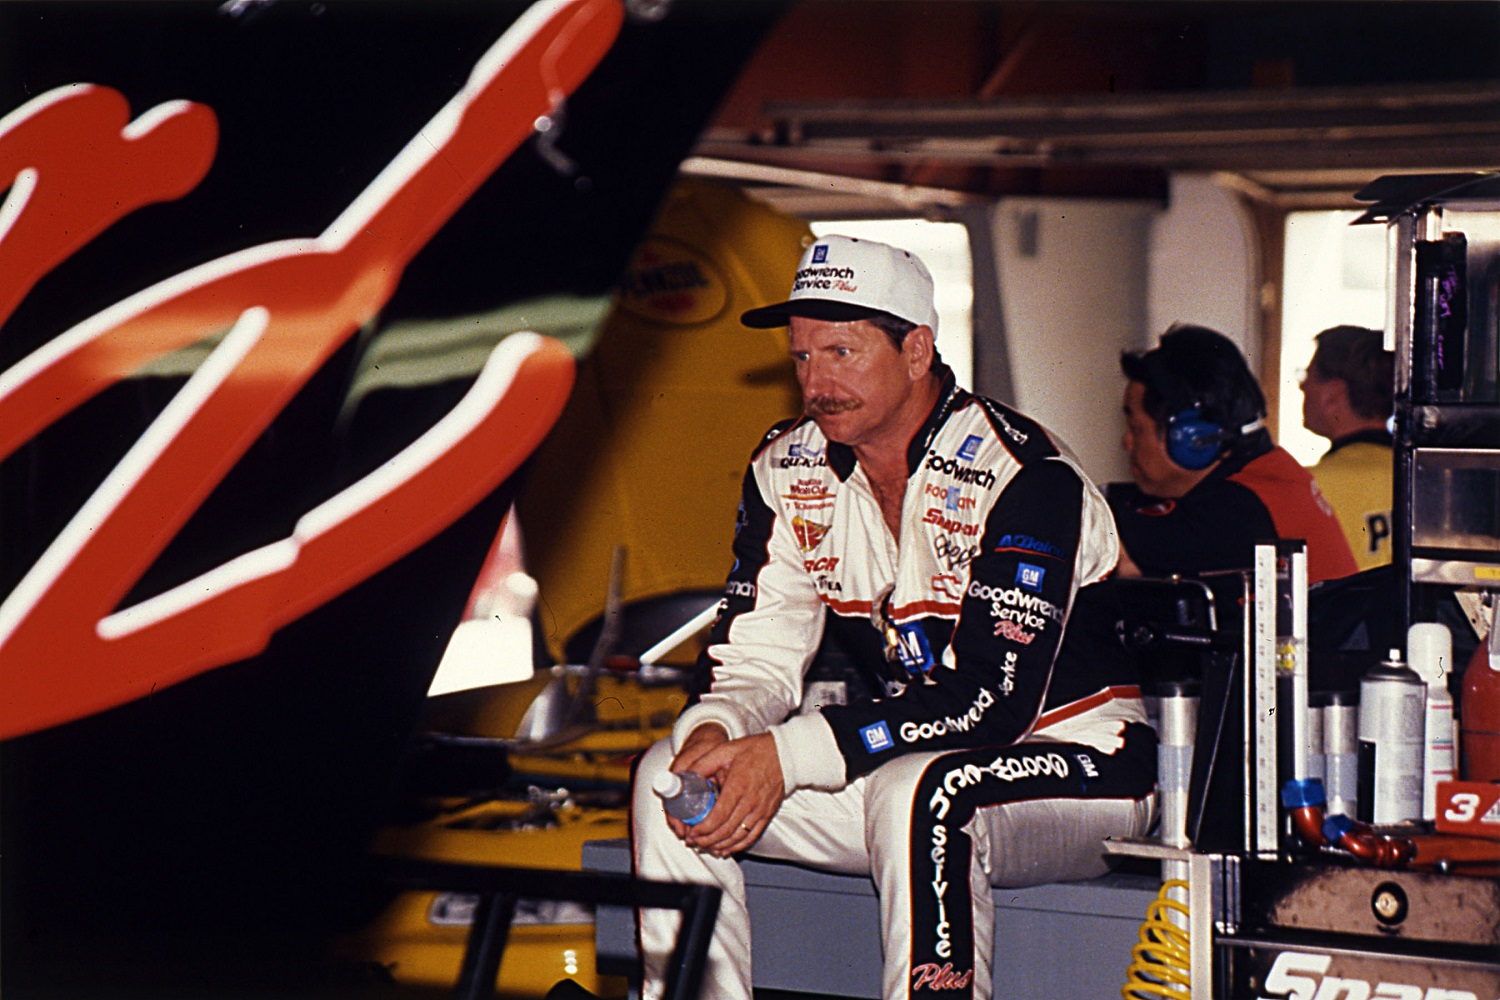 Dale Earnhardt Might Have Lived If NASCAR Had Learned from J.D. McDuffie's Tragic Death